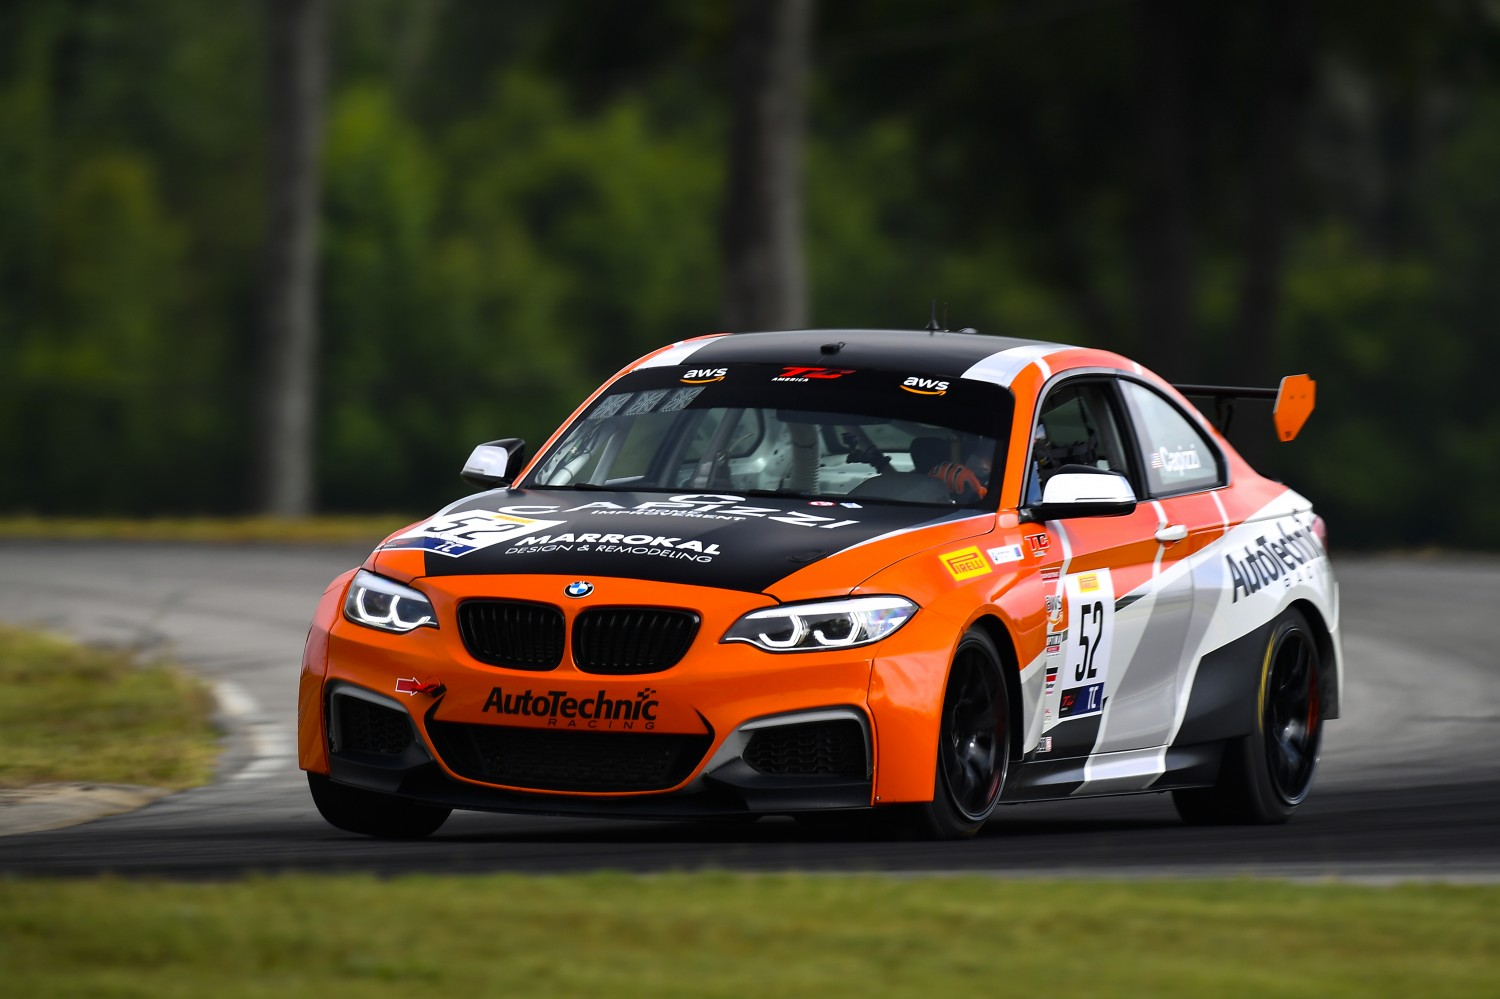 #52 TC, Auto Technic Racing, Tom Capizzi, BMW M240iR Cup, Capizzi Home Improvement, Marrokal Design & Remodeling, AutoTechnic Racing, 2020 SRO Motorsports Group - VIRginia International Raceway, Alton VA  | SRO Motorsports Group